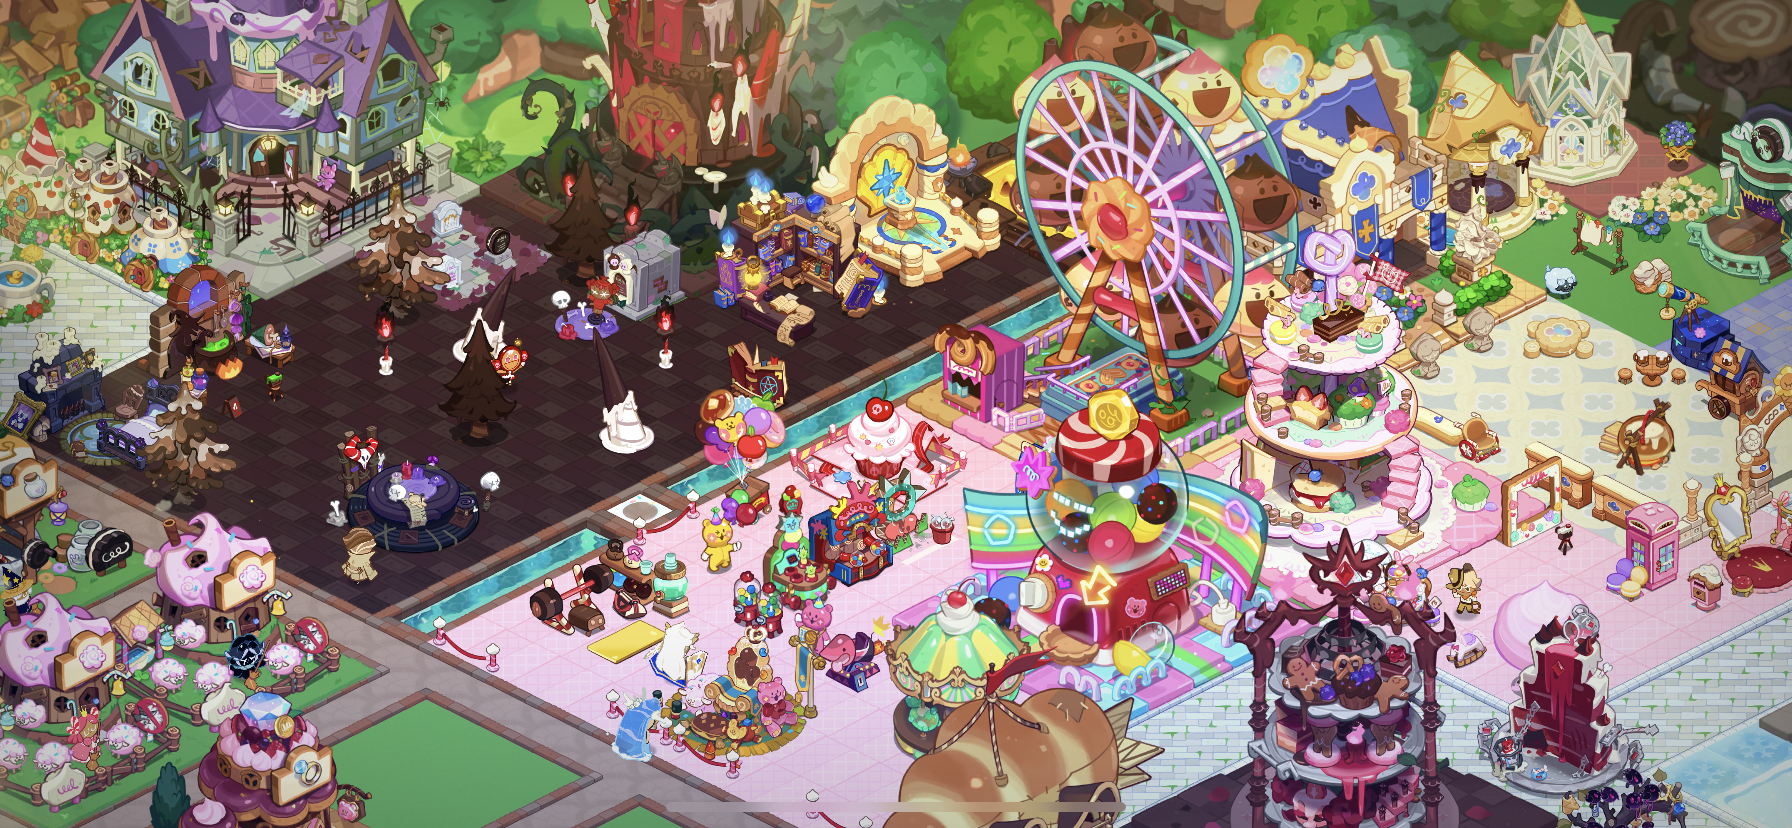 A preview of a Cookie Run: Kingdom kingdom, covered in pink and brown accessories.